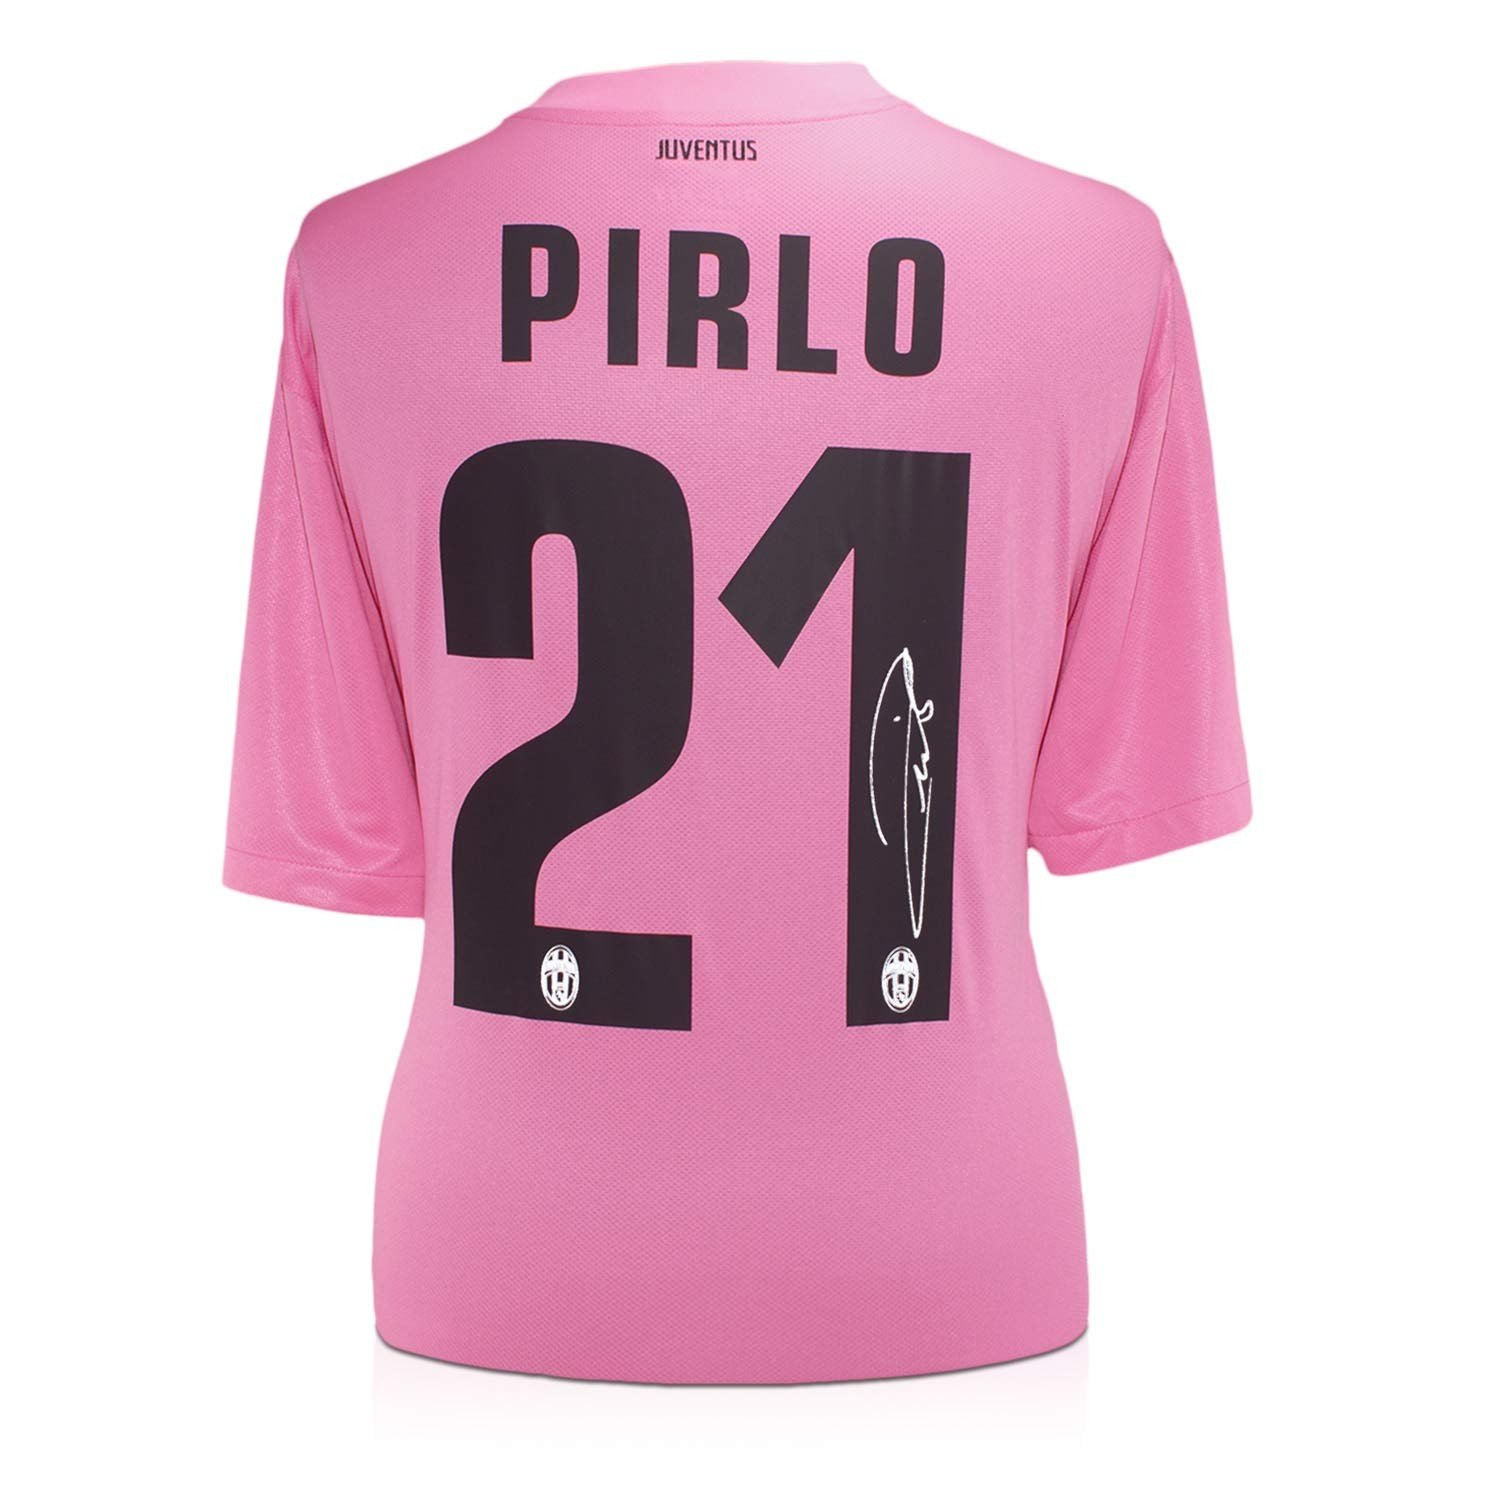 119283862 Exclusive Memorabilia Andrea Pirlo Signed Juventus 2012-13 Away Football  Shirt  Amazon.co.uk  Toys   Games